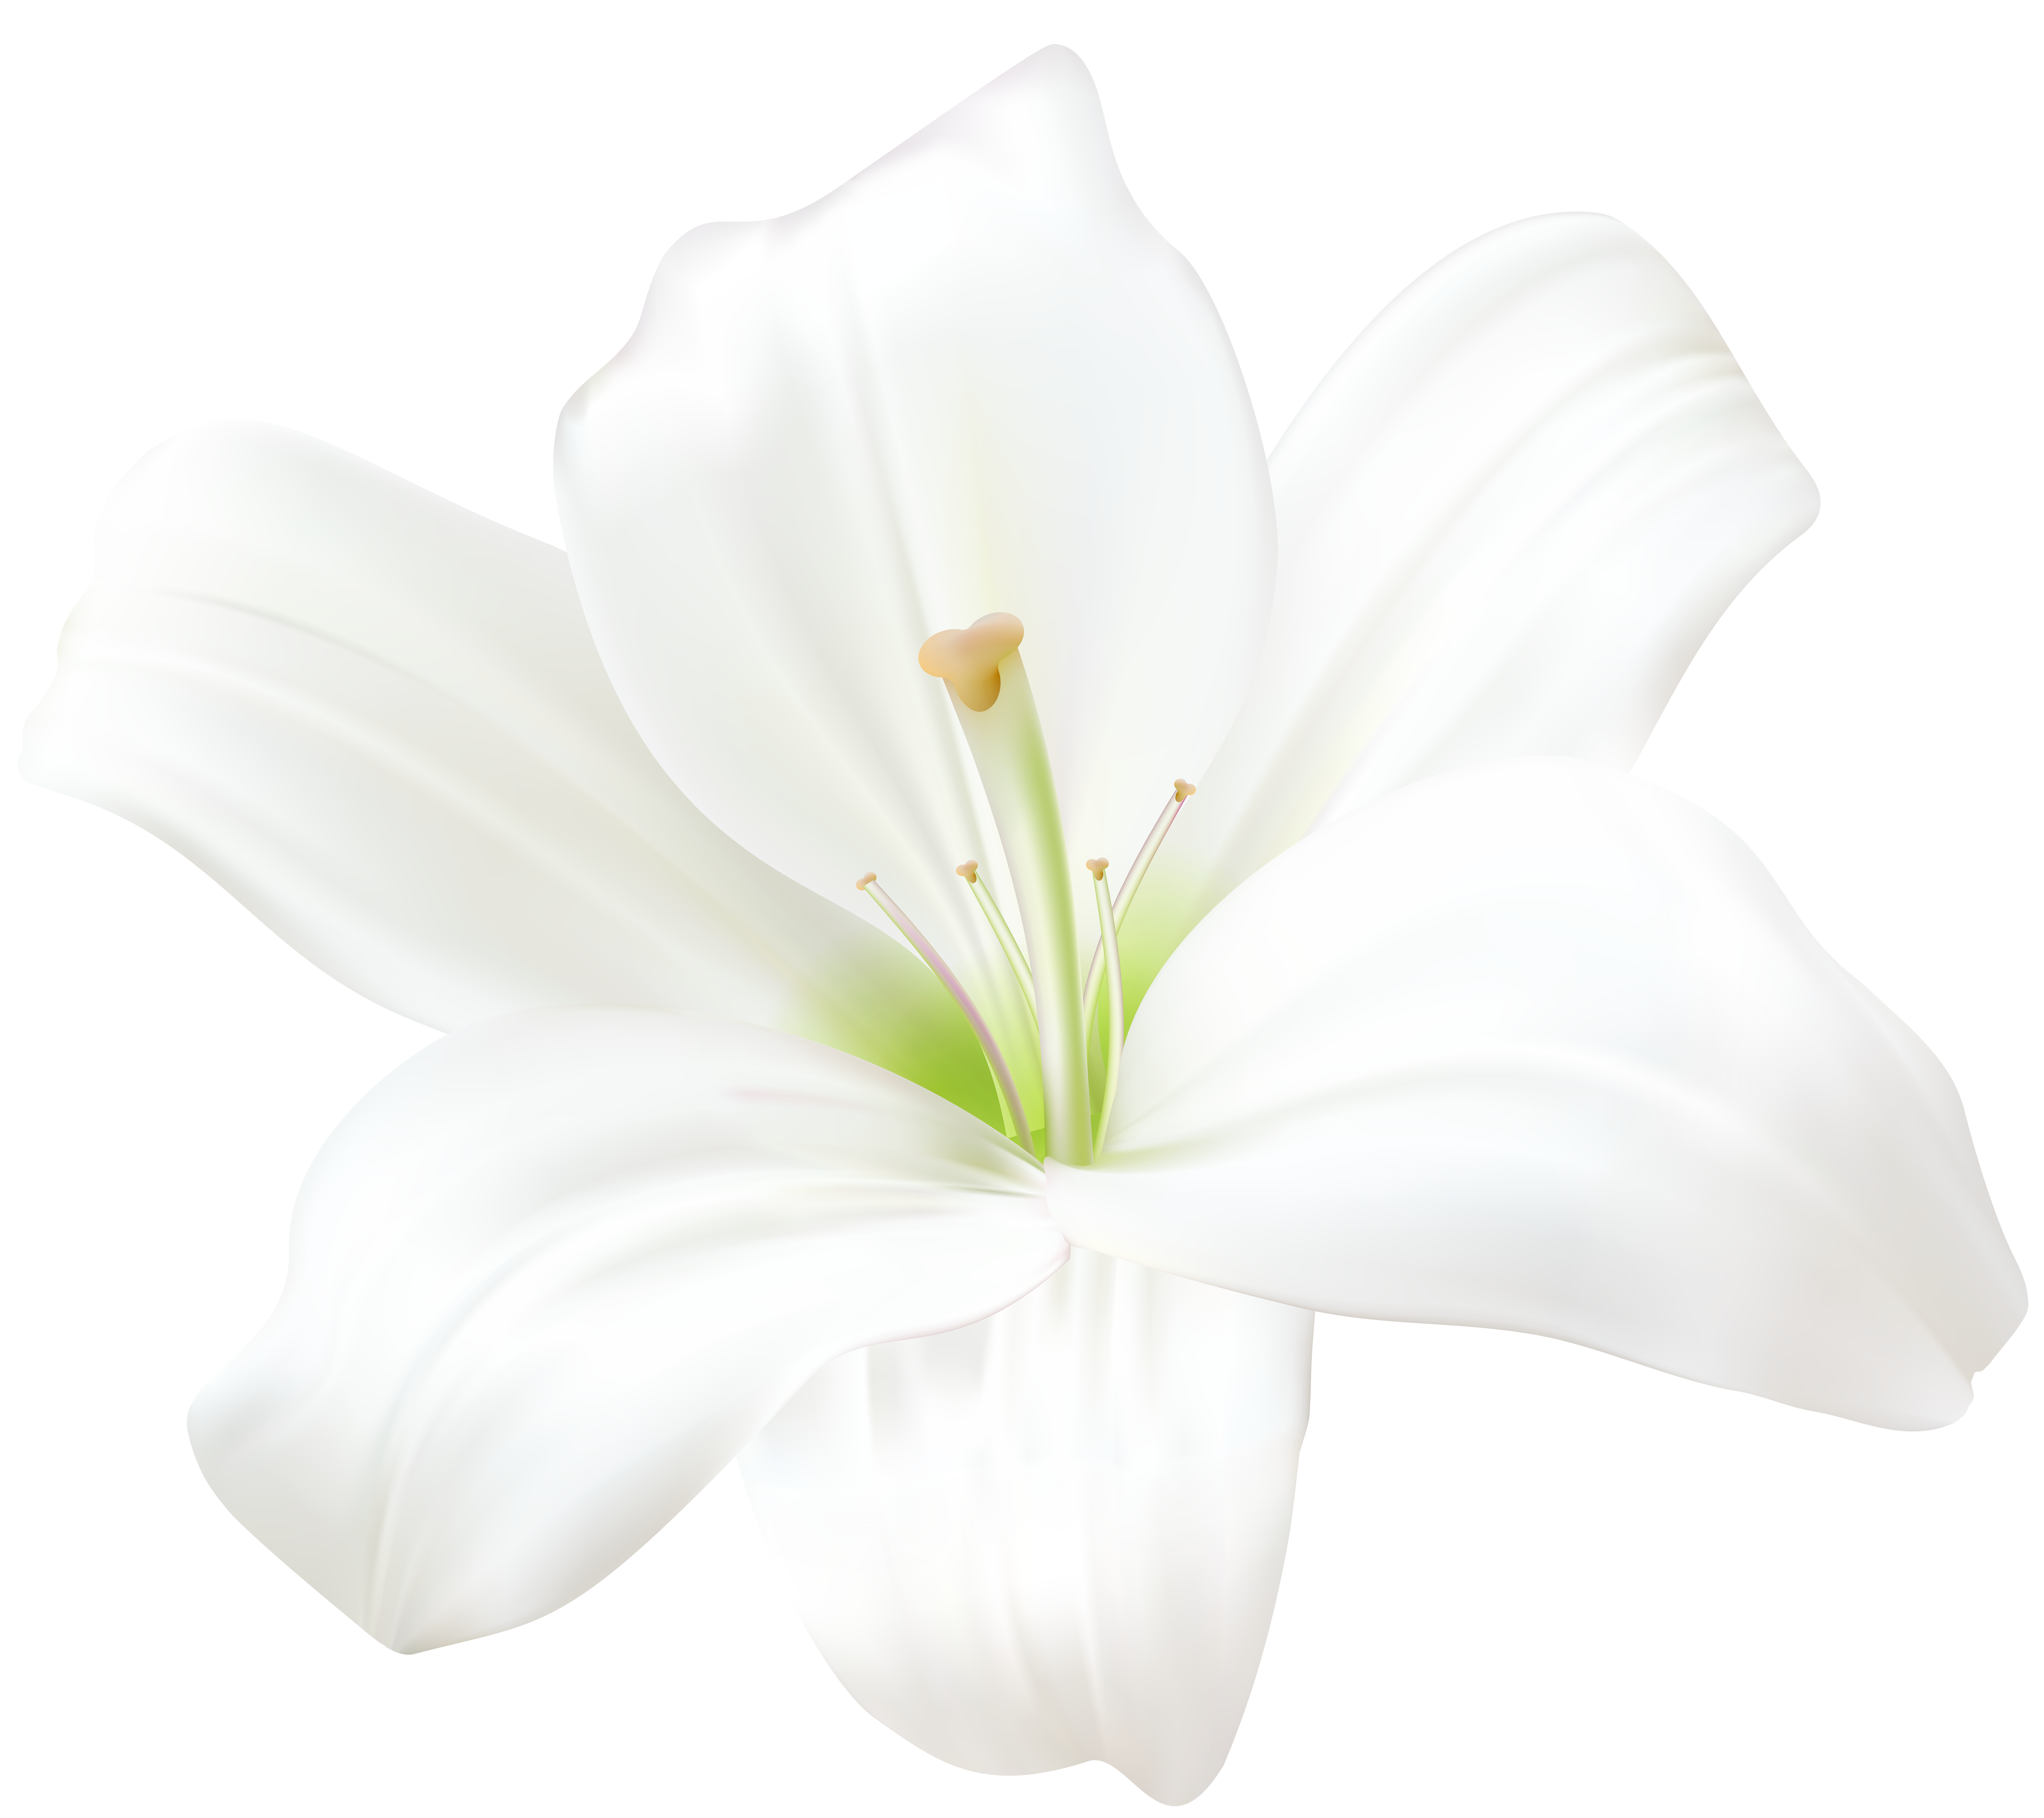 Lilies on the ground clipart black and white graphic freeuse White Lily PNG Clip Art Image   Gallery Yopriceville - High ... graphic freeuse